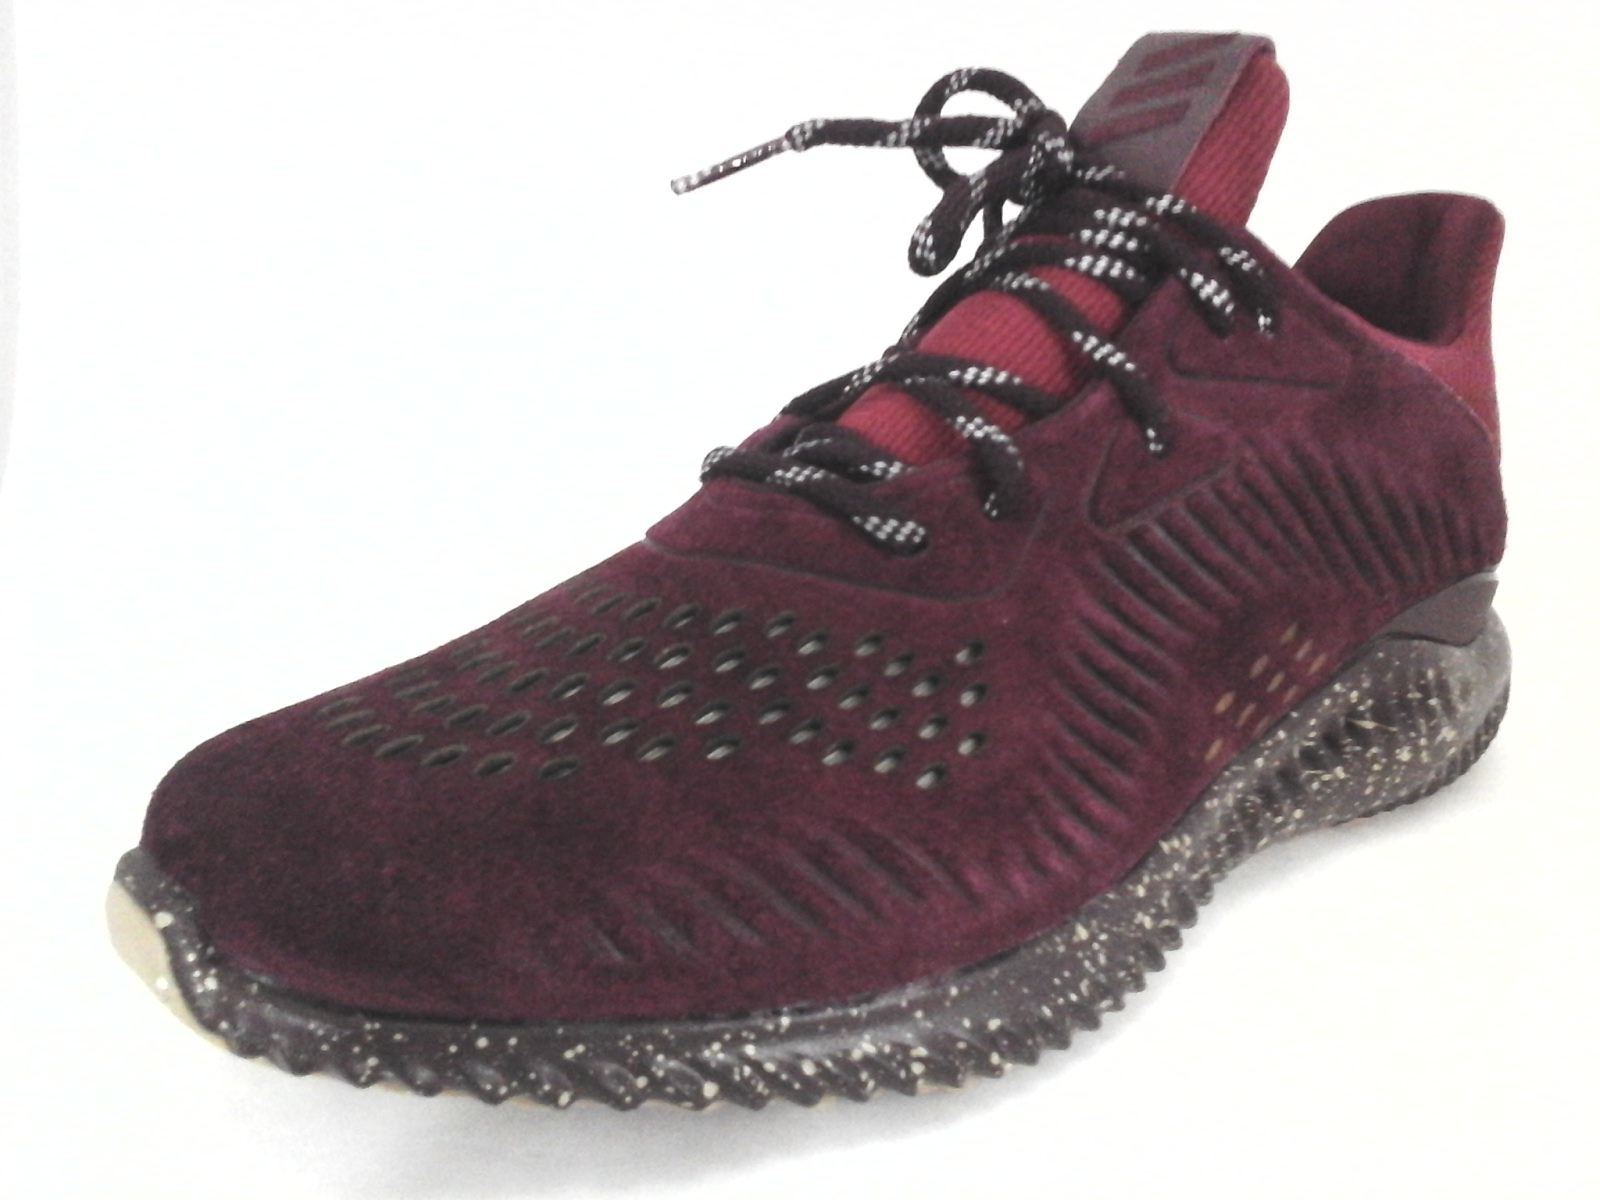 f973d27c361e7d ADIDAS Alphabounce Shoes Sneakers Maroon Red Suede CQ1189 Mens US 13 EU 48  New